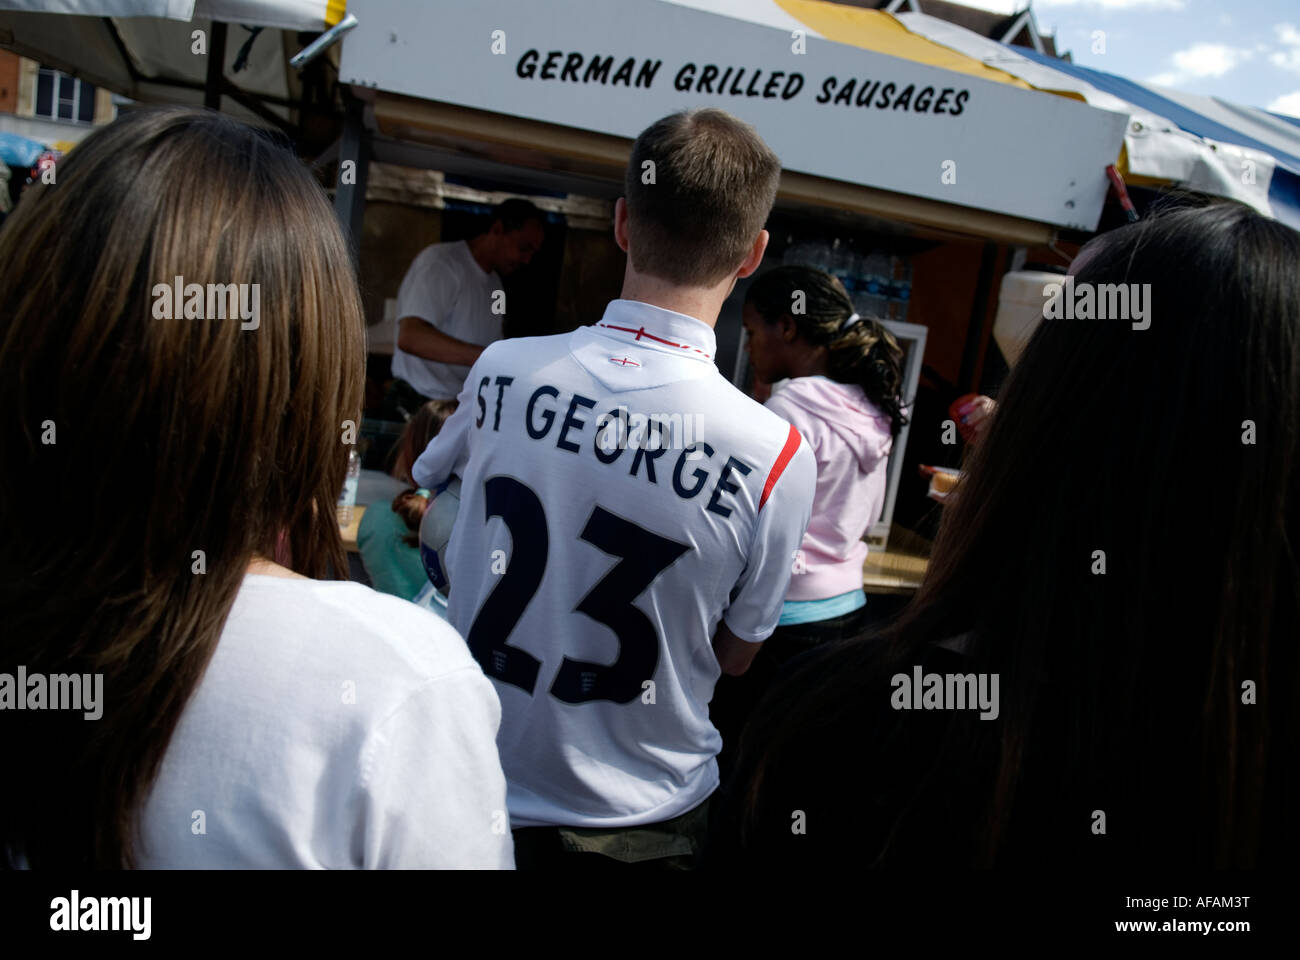 37745c852 MAN WEARING A PATRIOTIC ENGLAND SHIRT SHOWING ST GEORGES DAY DATE BUYING A  SAUSAGE FROM A